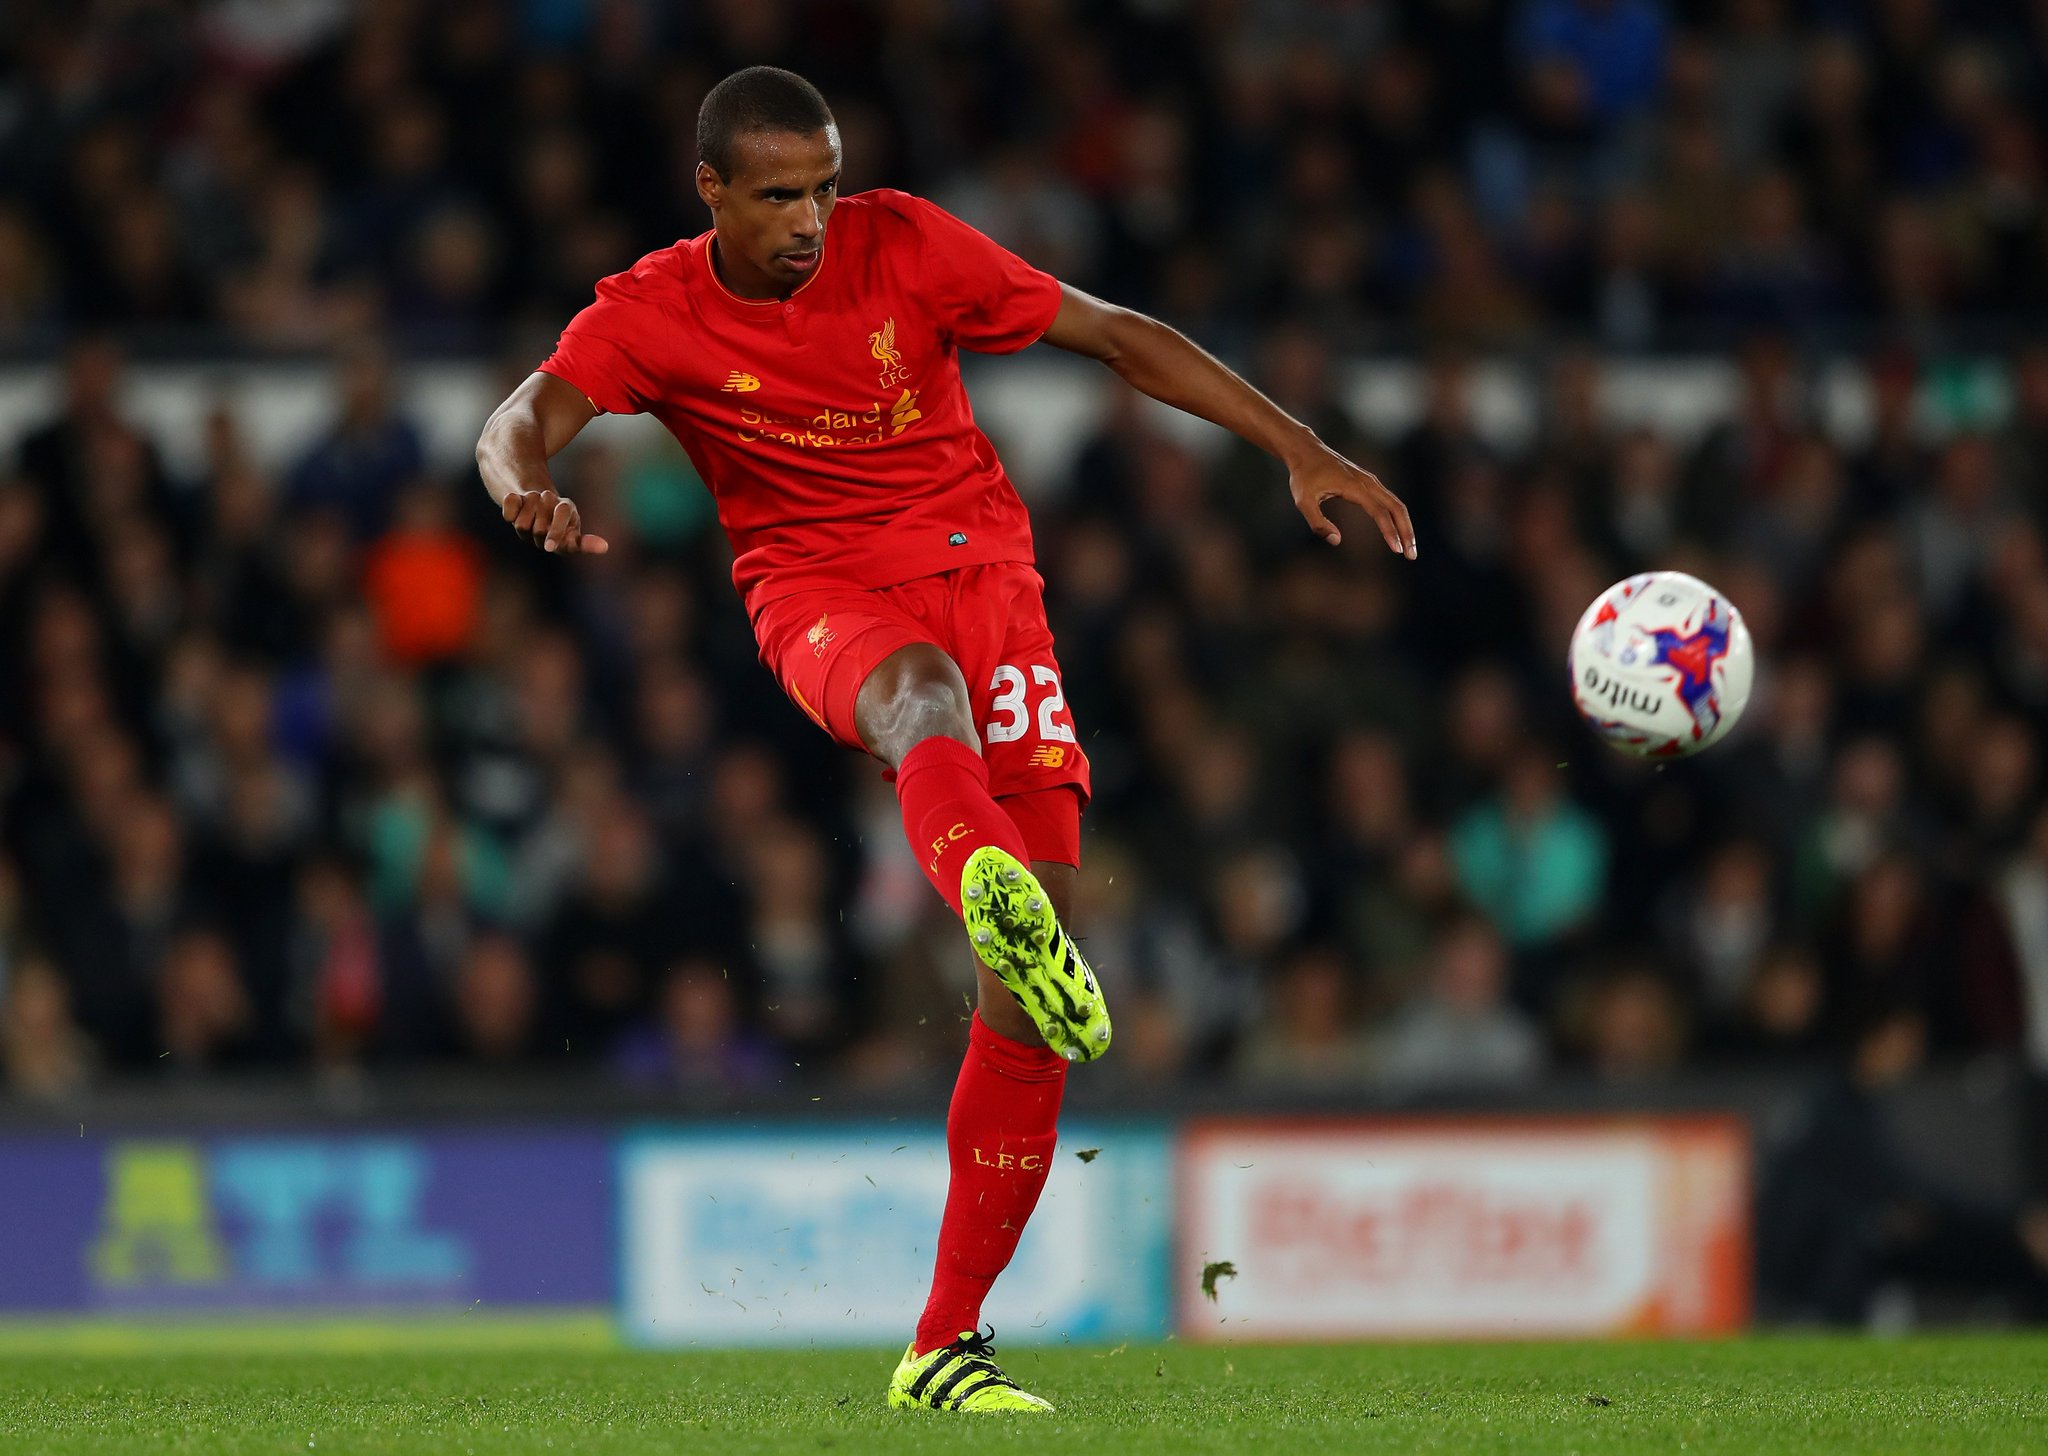 Liverpool could be without Joel Matip for a MONTH as Cameroon row continues https://t.co/OWcdk53fJL #LFC https://t.co/z28ehgIfFw